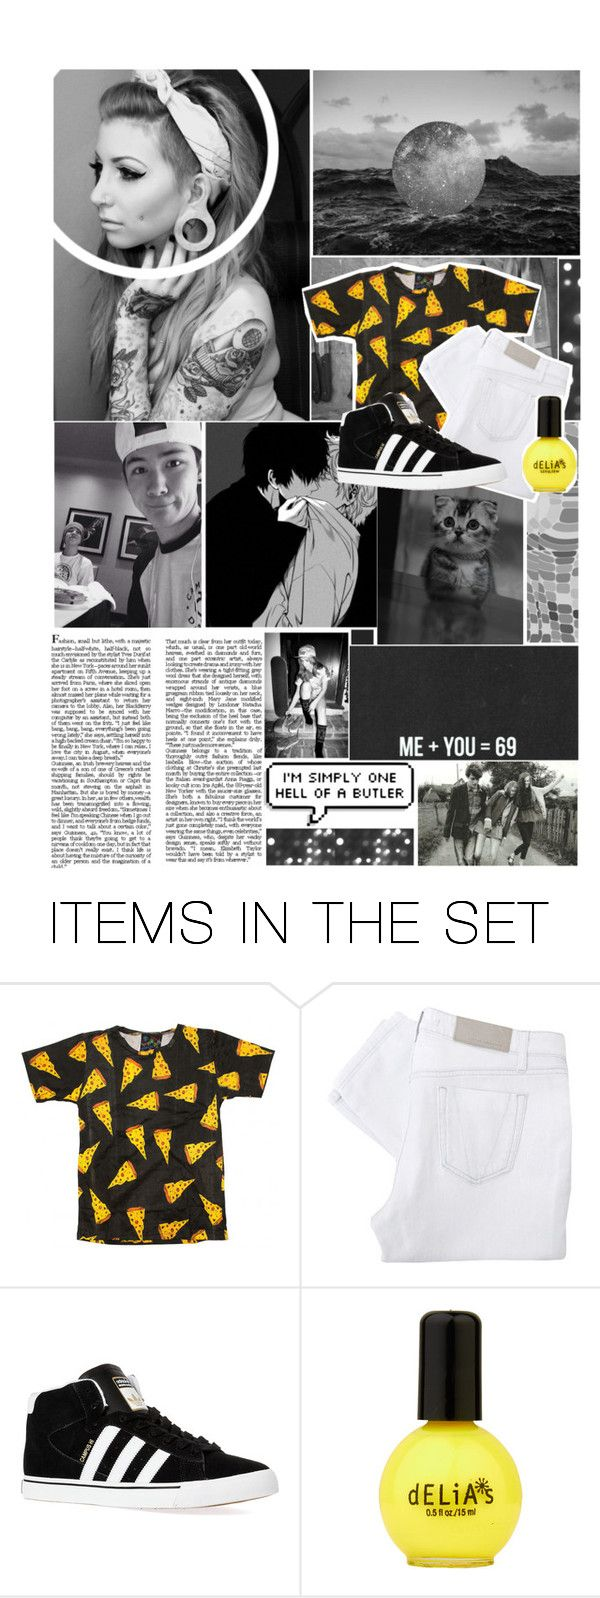 My life revolves around you by im-in-love-with-you on Polyvore featuring art